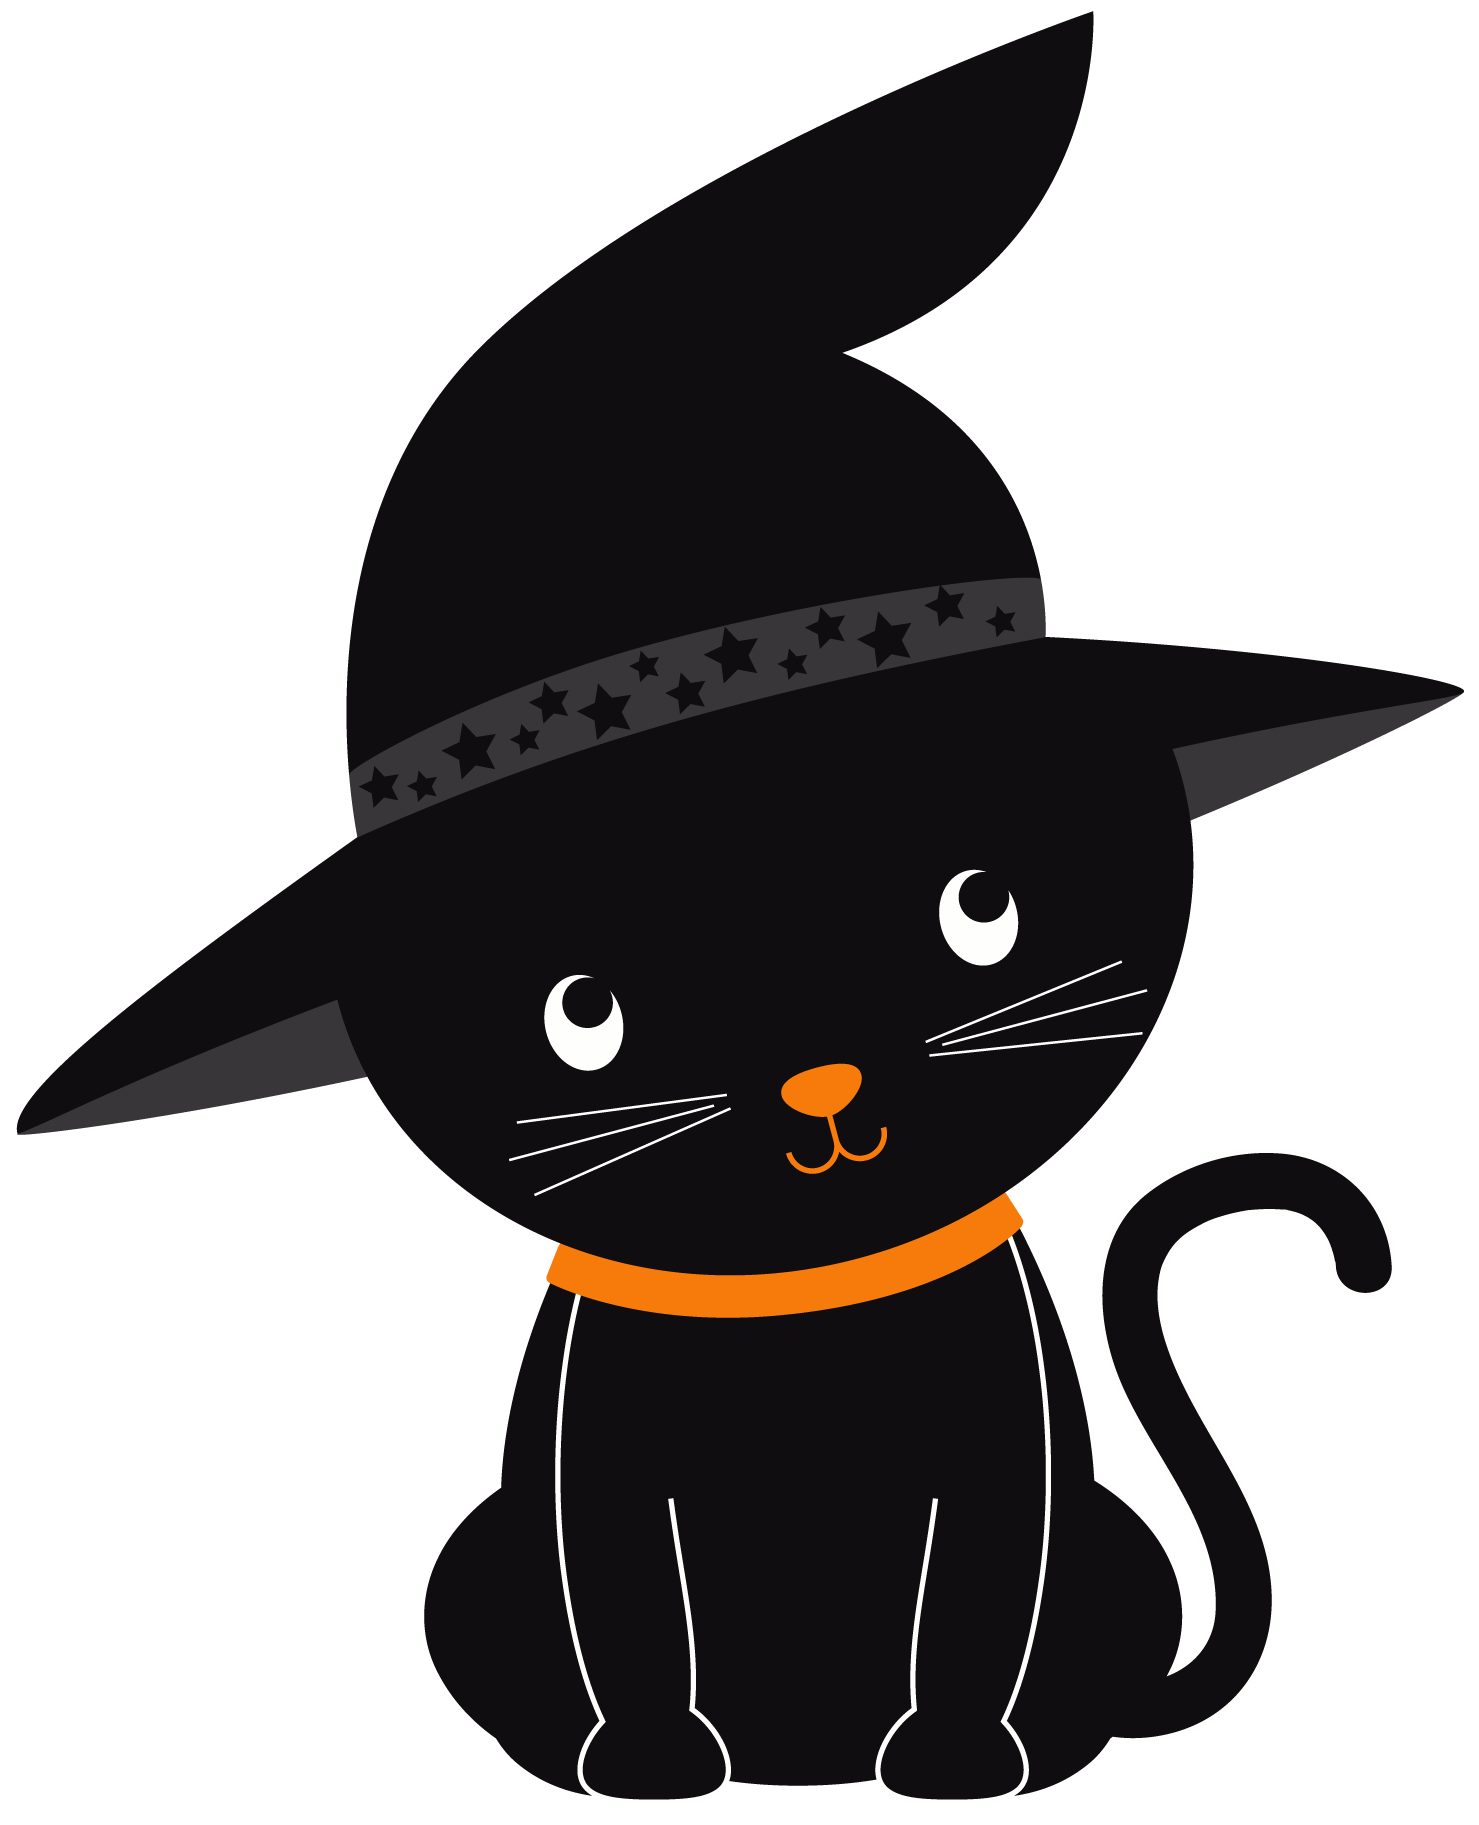 Witch hat clipart cat graphic black and white download Witch hat,Black cat,Cartoon,Hat,Costume hat,Headgear,Cat ... graphic black and white download